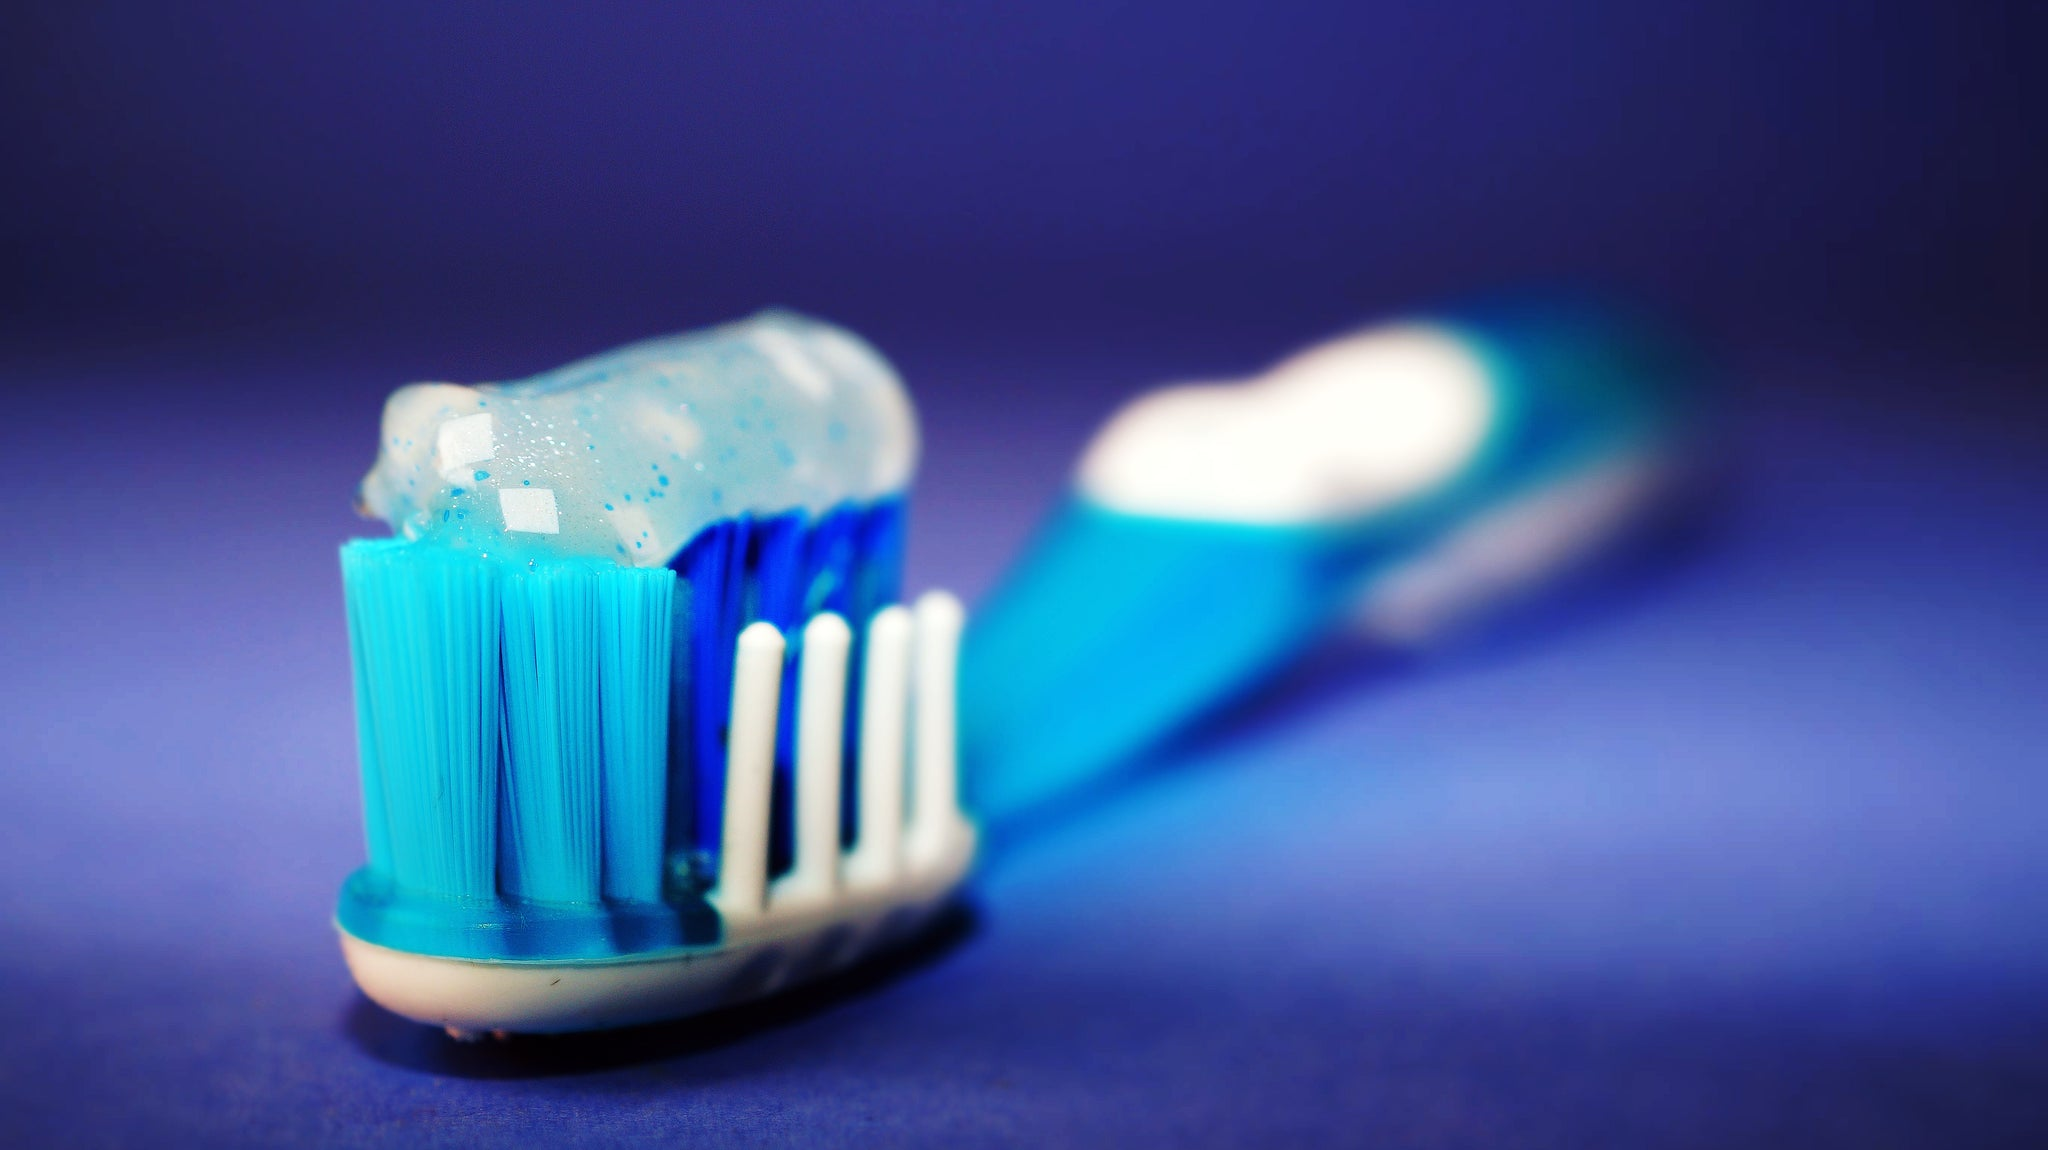 Blue and white bristled toothbrush with toothpaste on, for AutoBrush